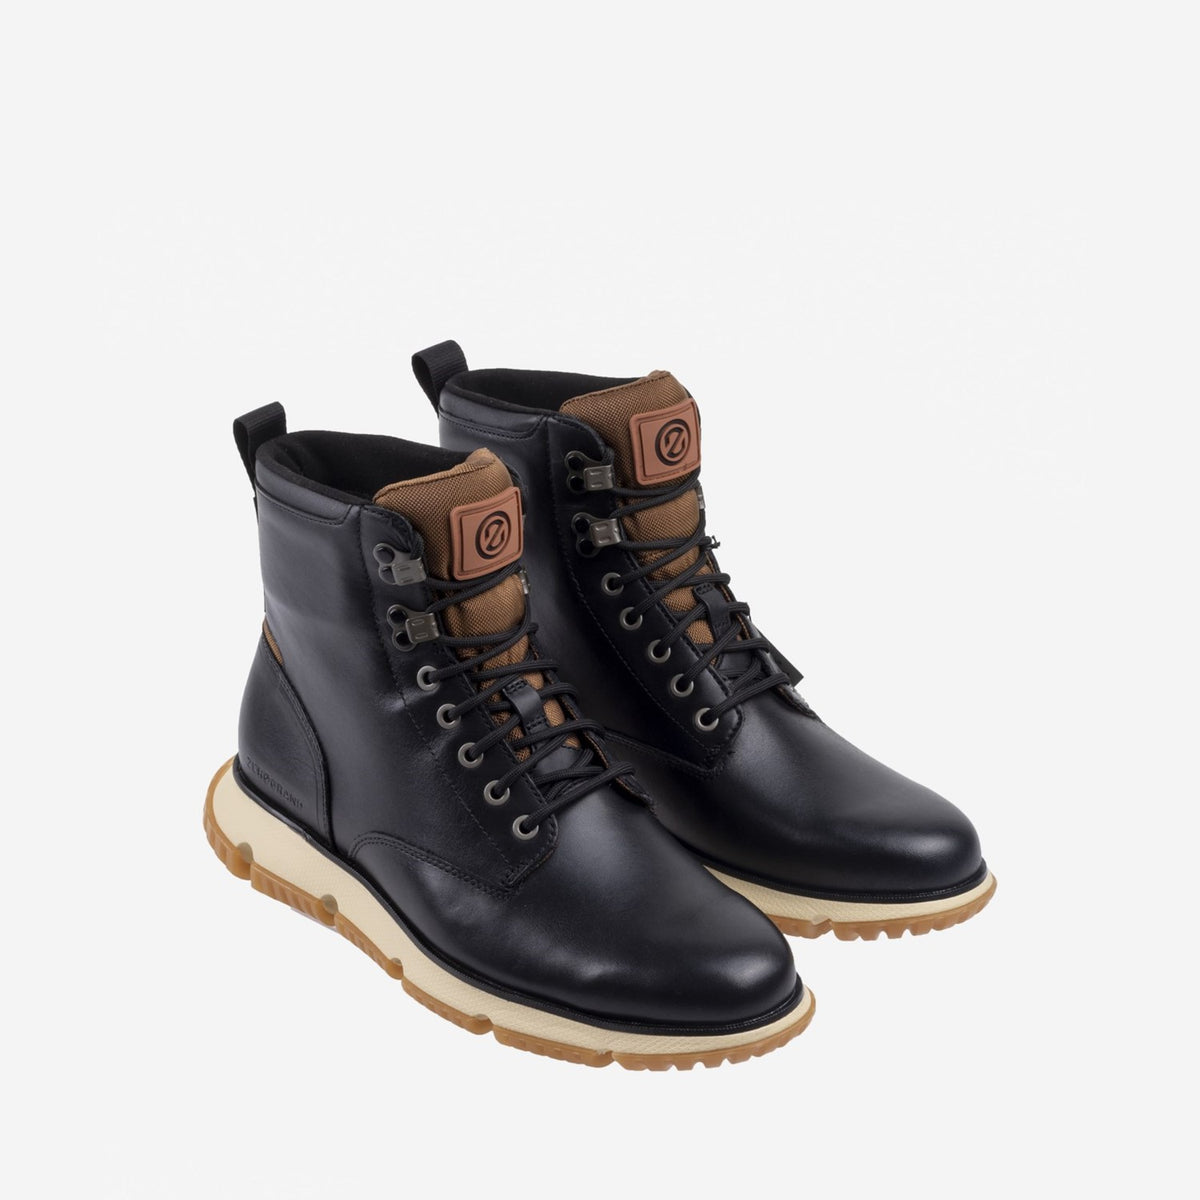 Men's 4.ZERØGRAND City Waterproof Boot Black WP/Lambswool